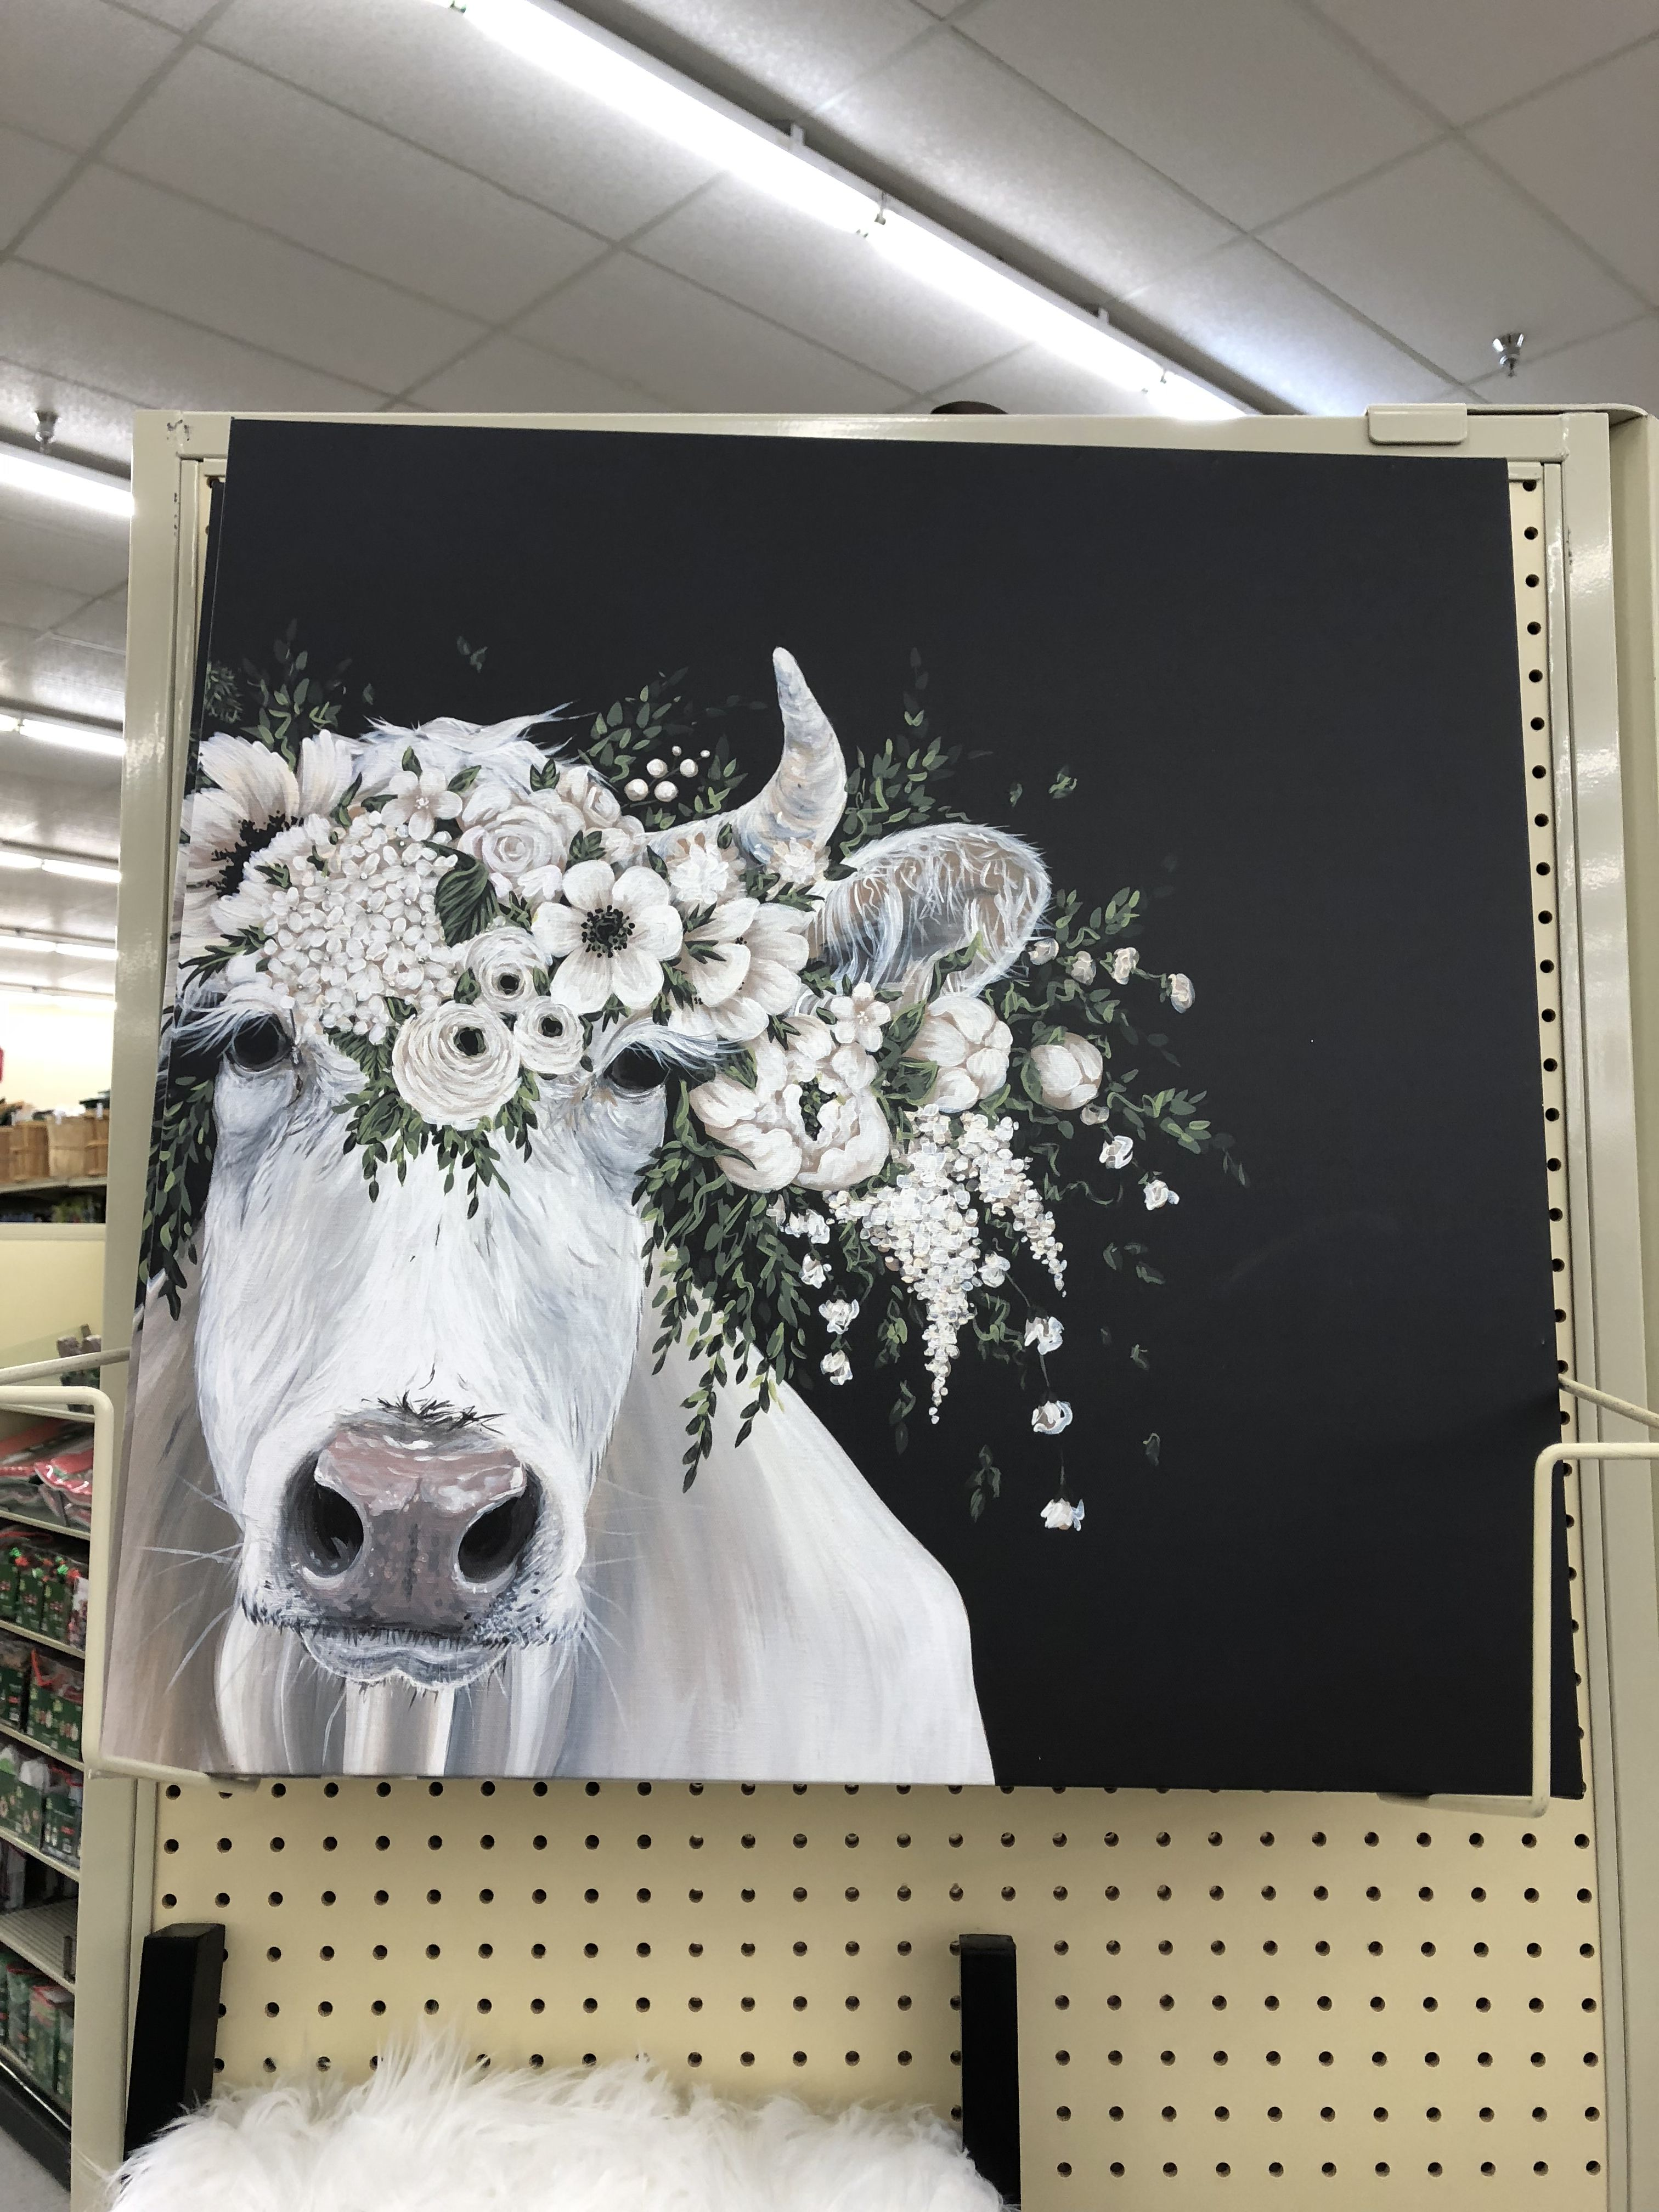 Pin by Jenna Reed on Art in 2019 | Cow art, Crown painting ...